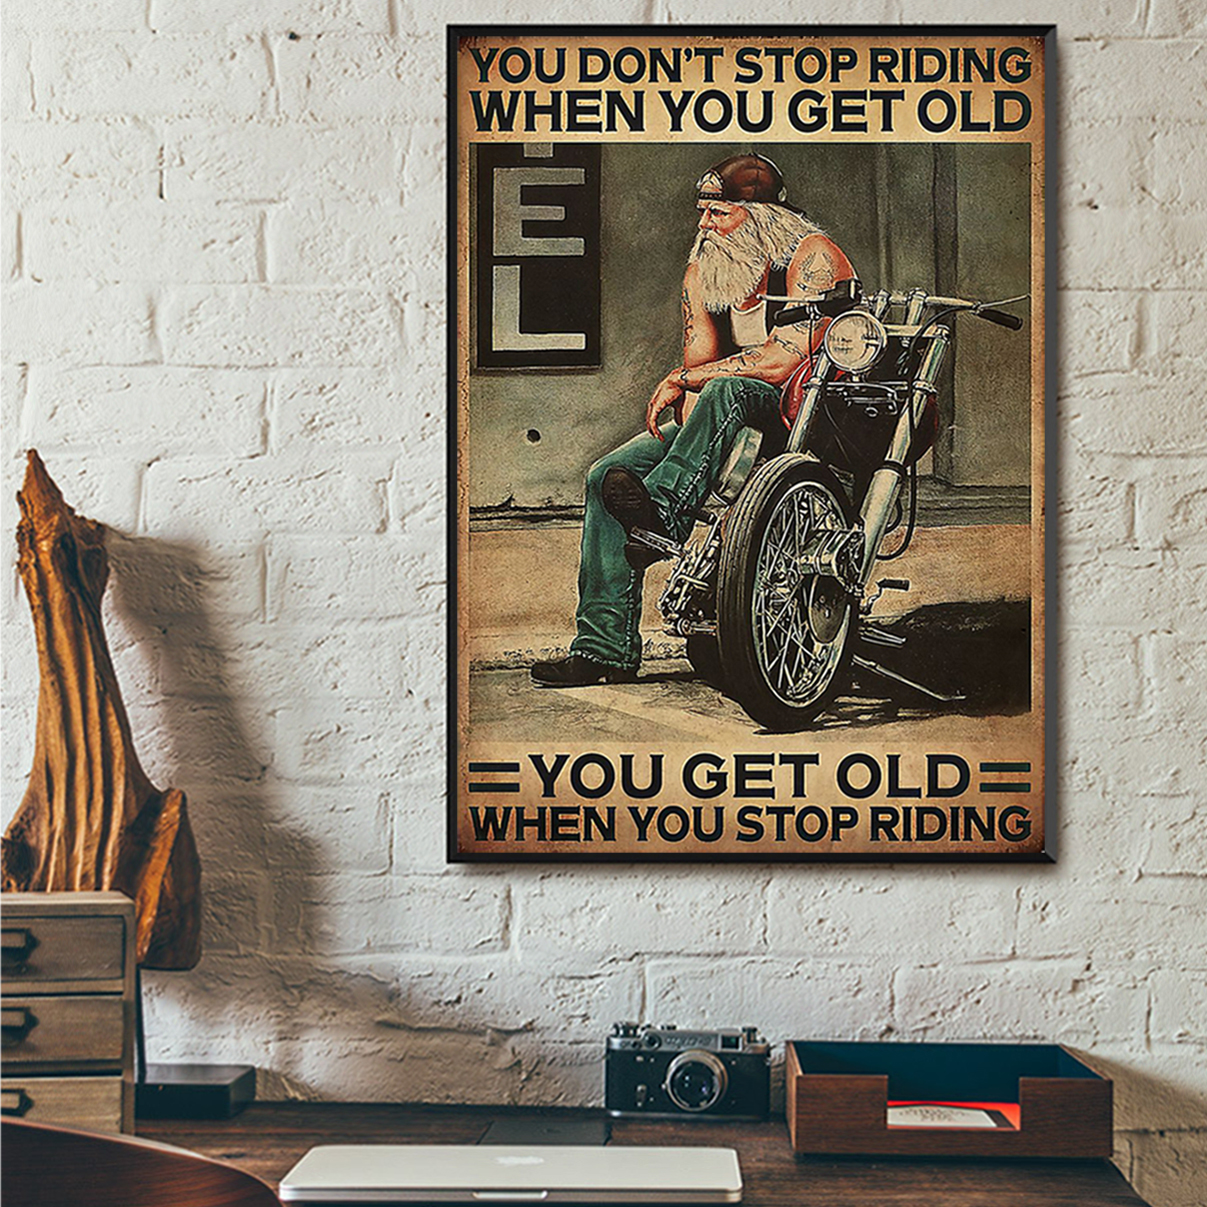 Old biker Motorcycle you don't stop riding poster A2